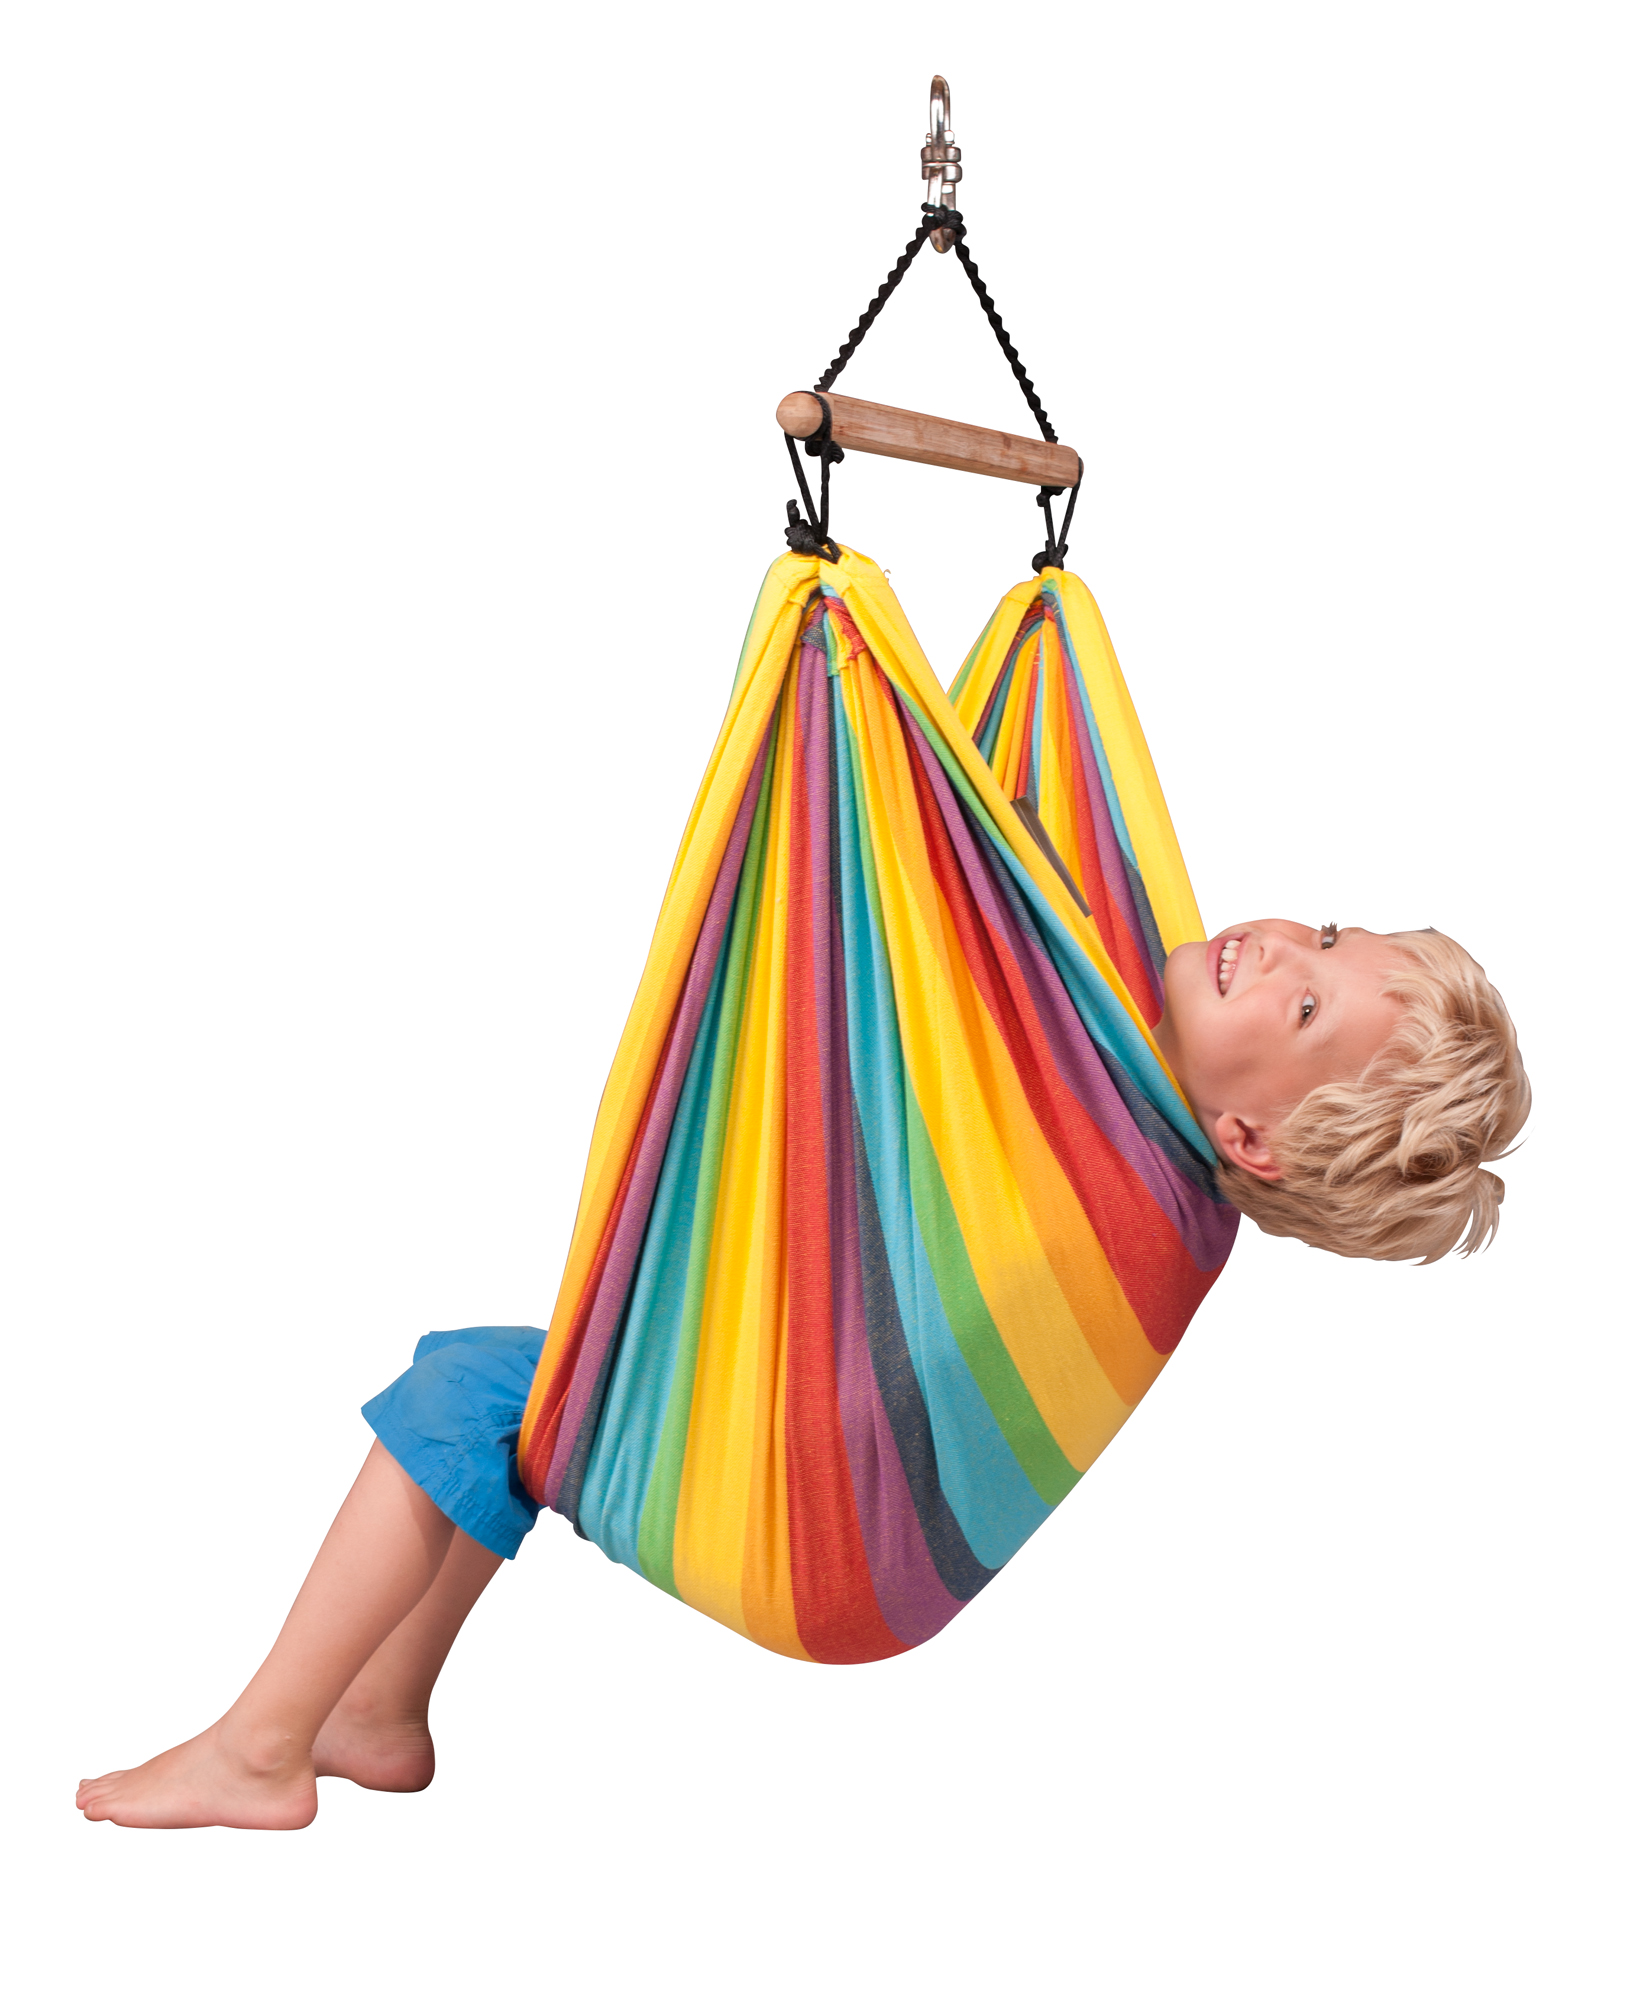 REVIEW Hammock Chir For Kids- Organic Cotton